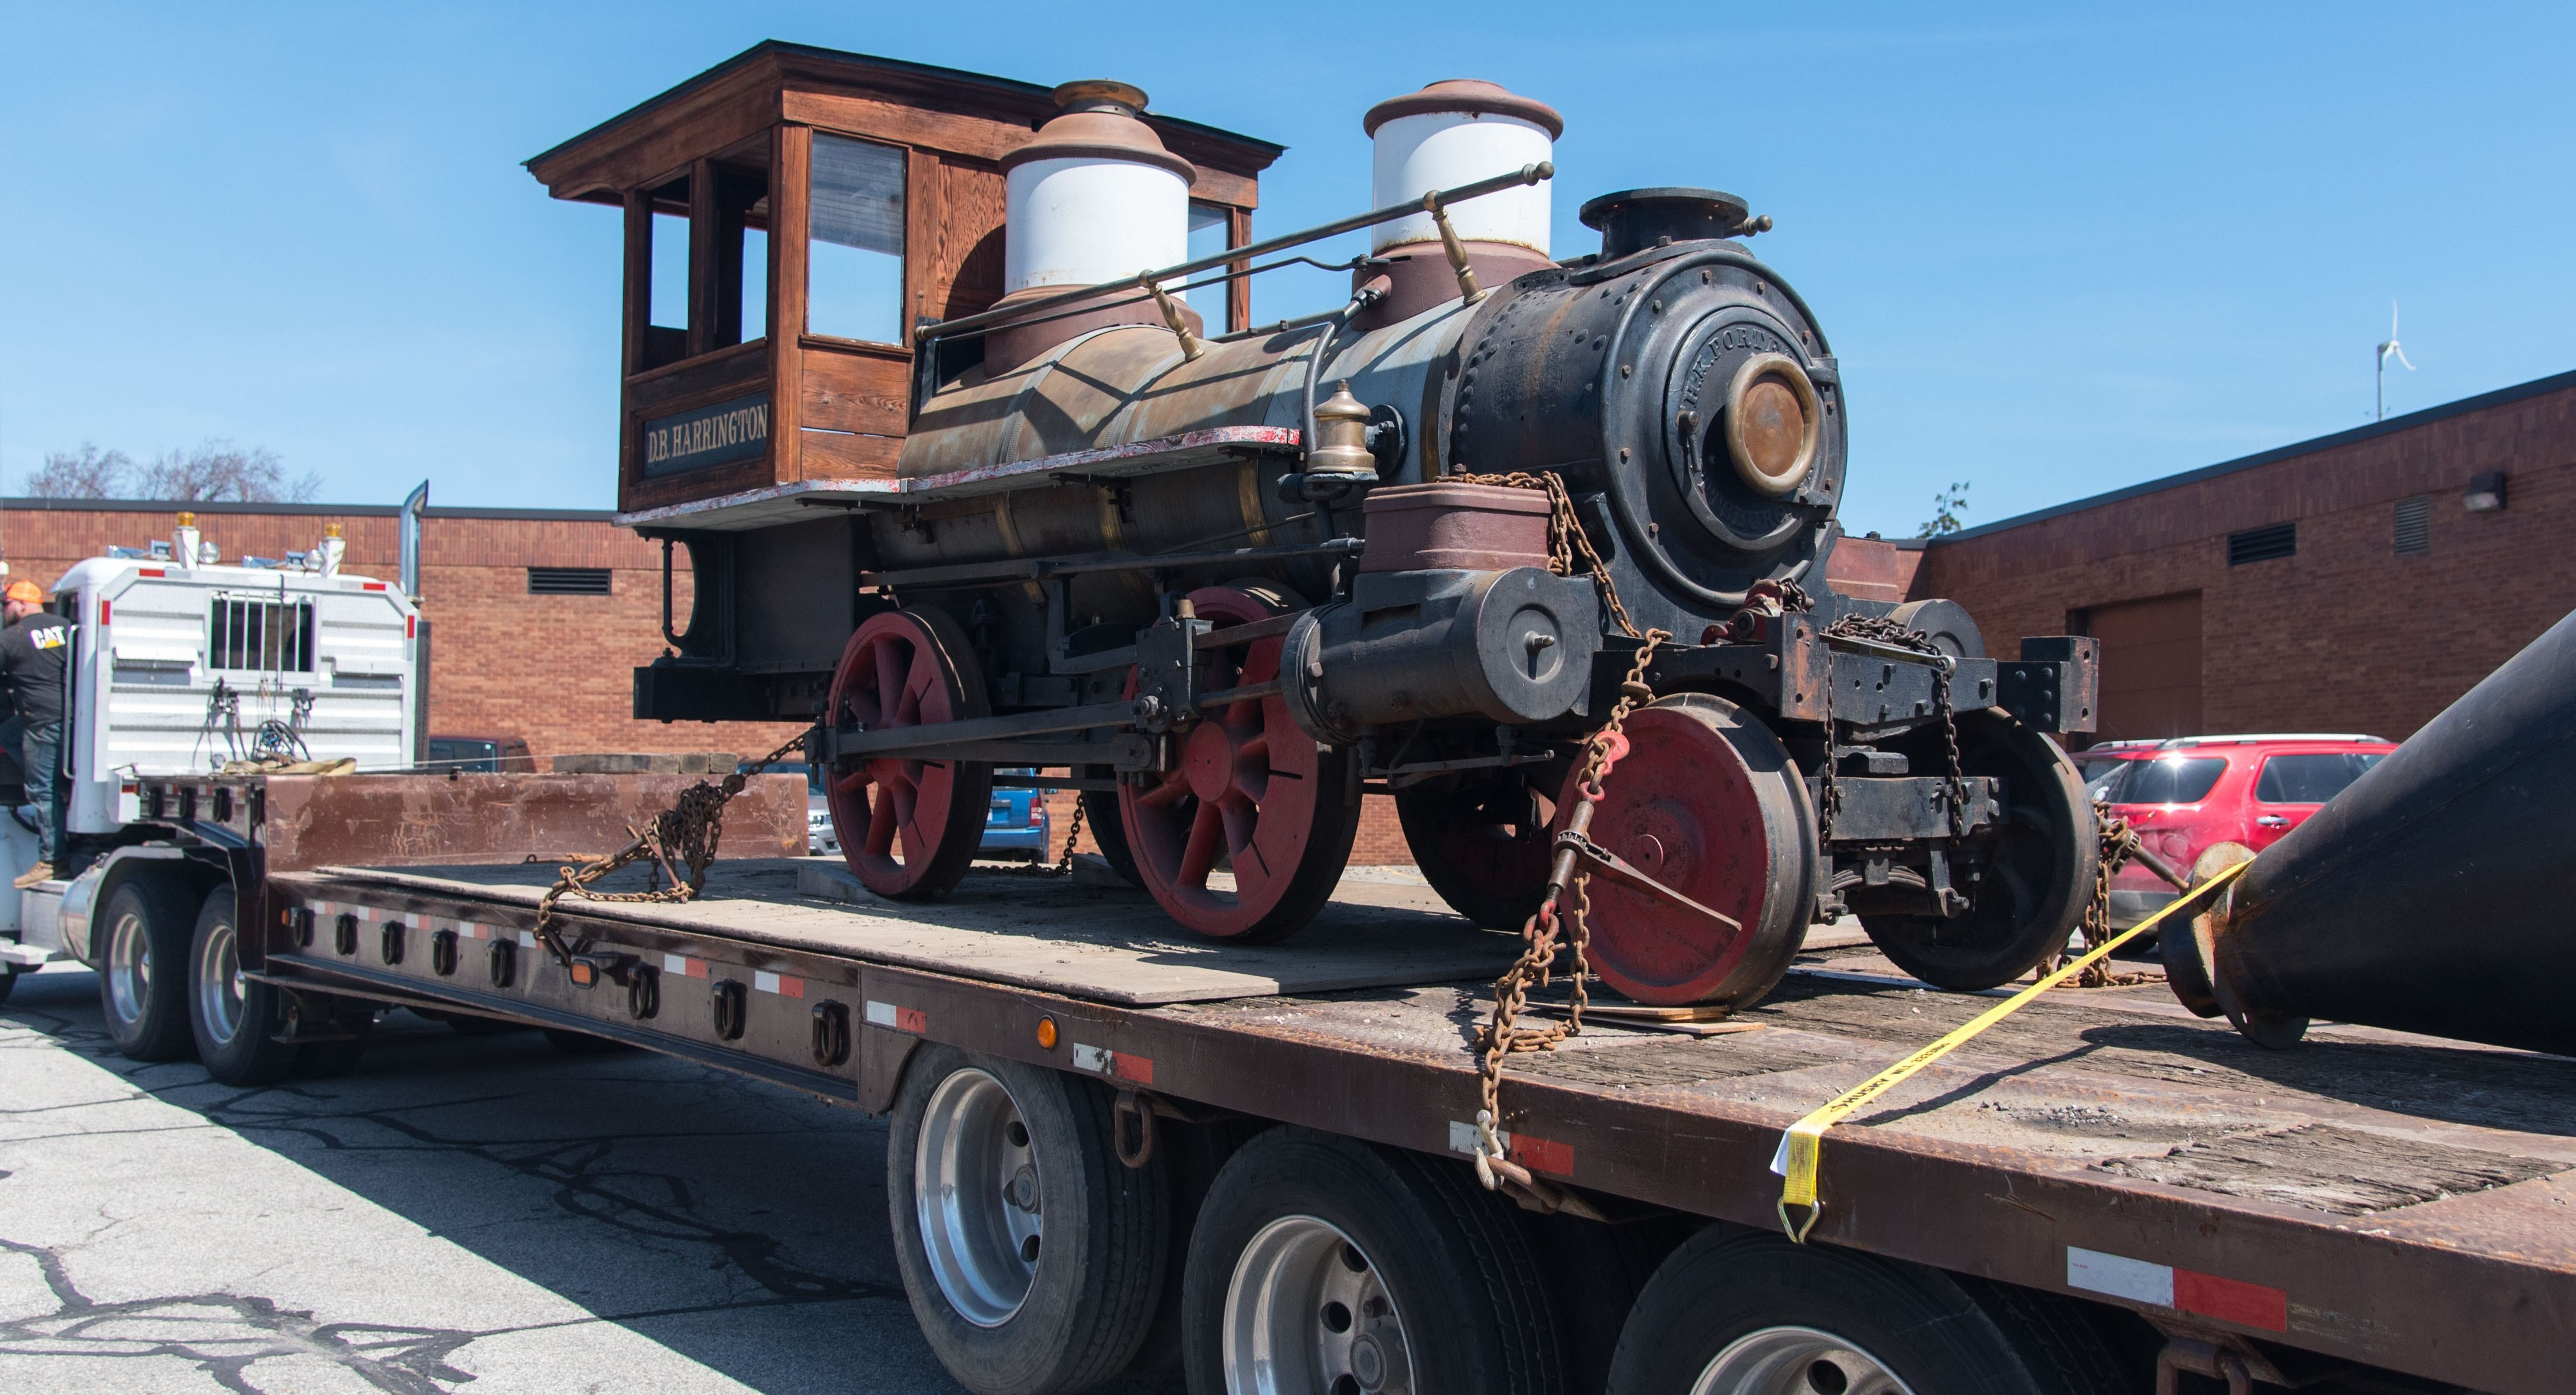 D.B. Harrington locomotive arrives on the St. Clair County Community College campus